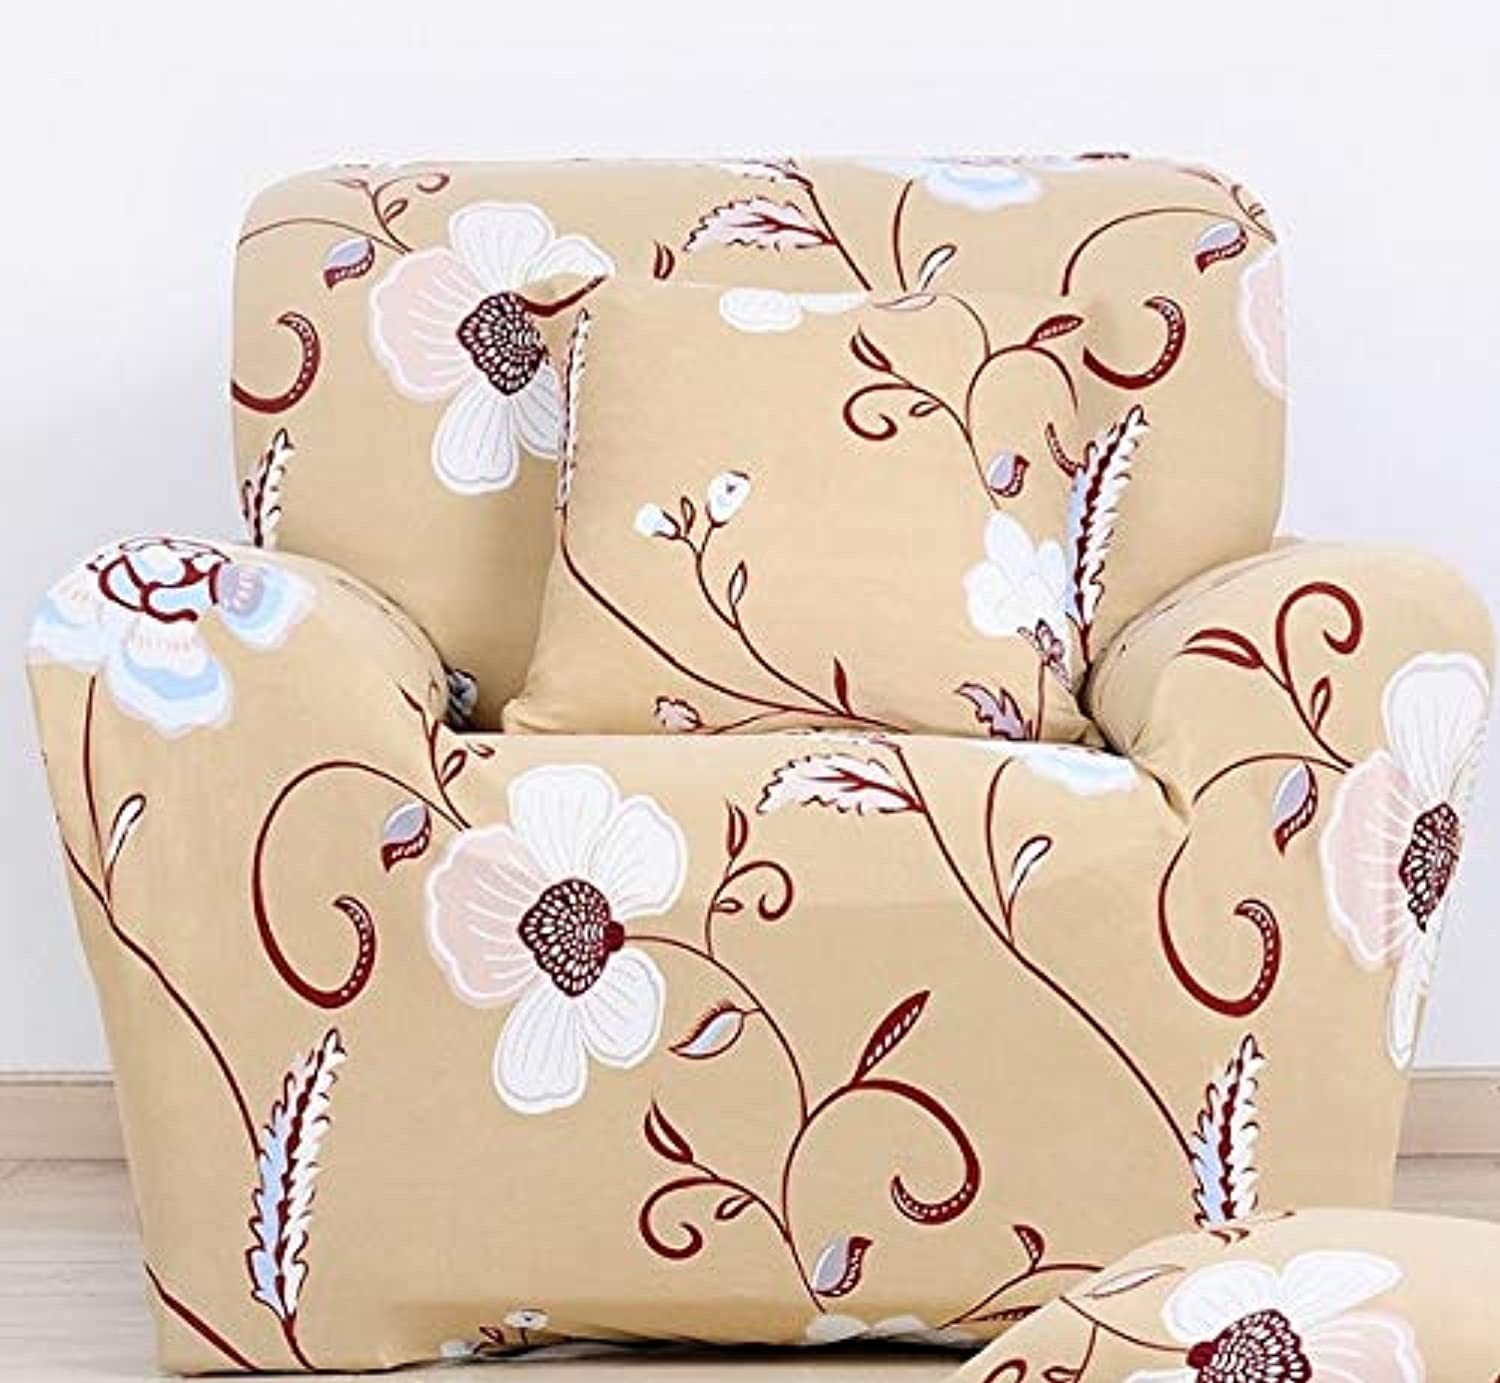 Farmerly Purple Tree Arm Sofa Chair Cover Spandex Elastic Stretch Printed 2018 New Arrival Single Sofa Cover for Living Room Home Decor   05, Single Seater